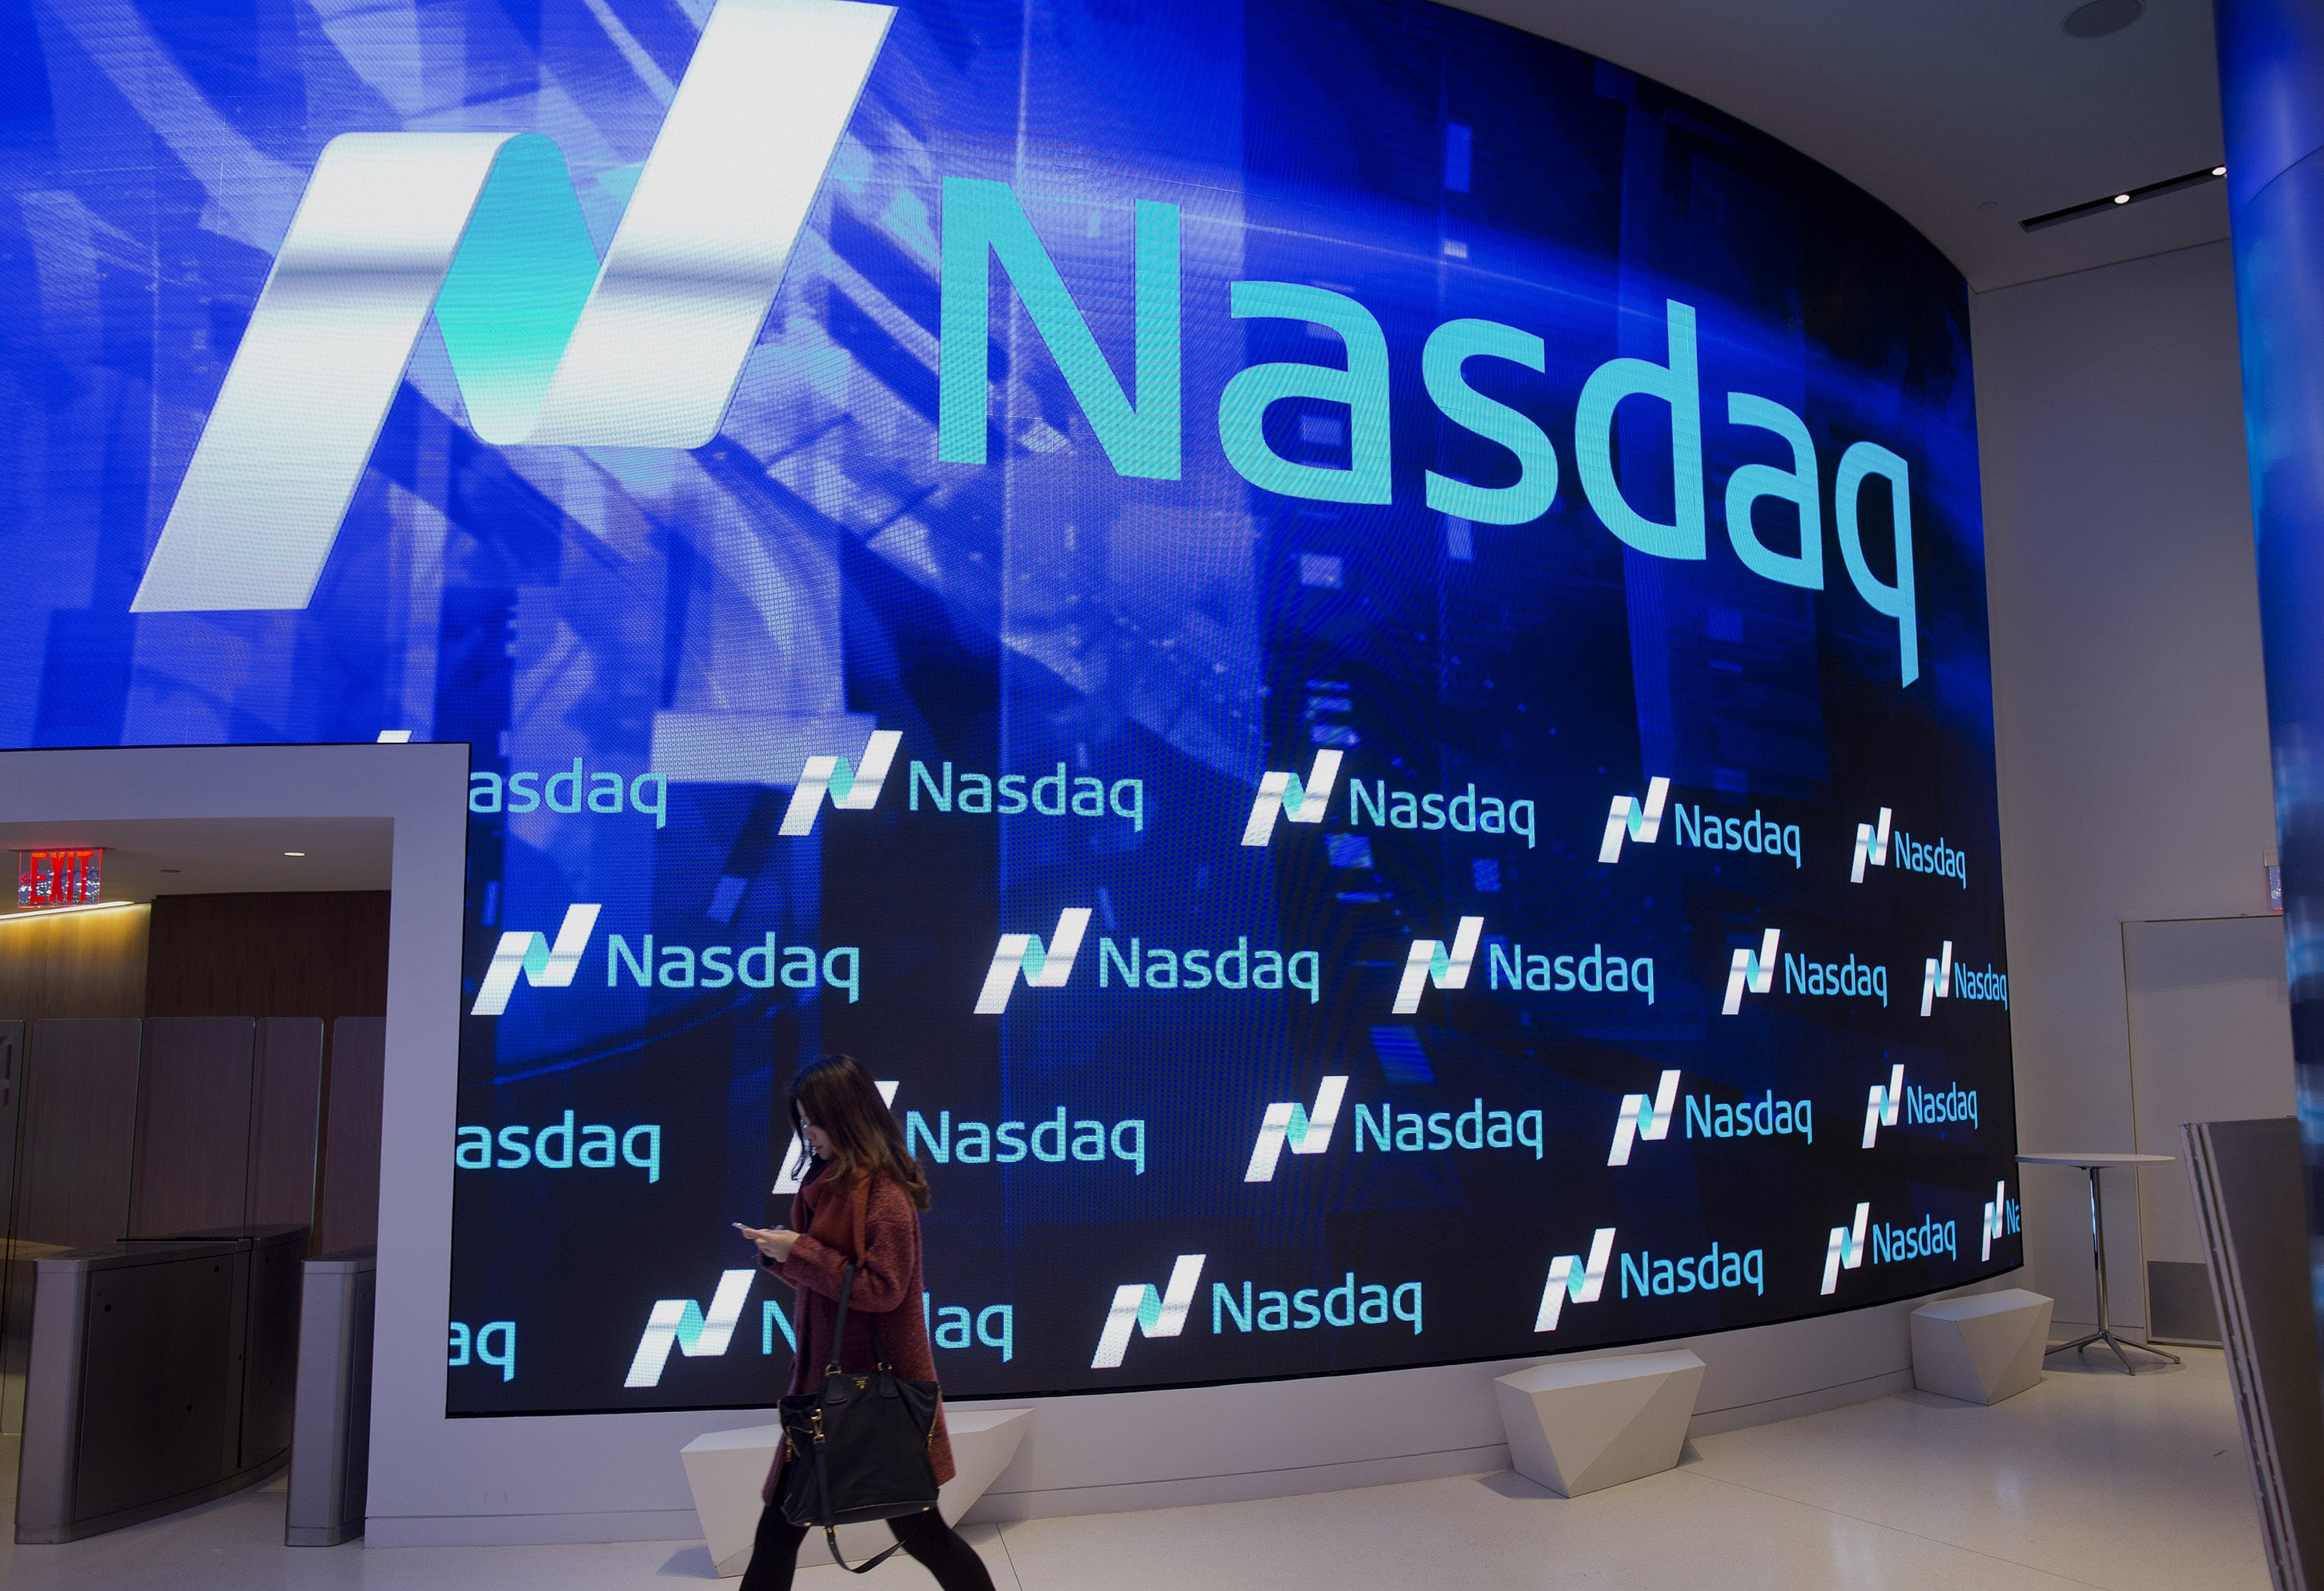 NASDAQ Delists Former Soft-Drink Company Long Blockchain Corp.